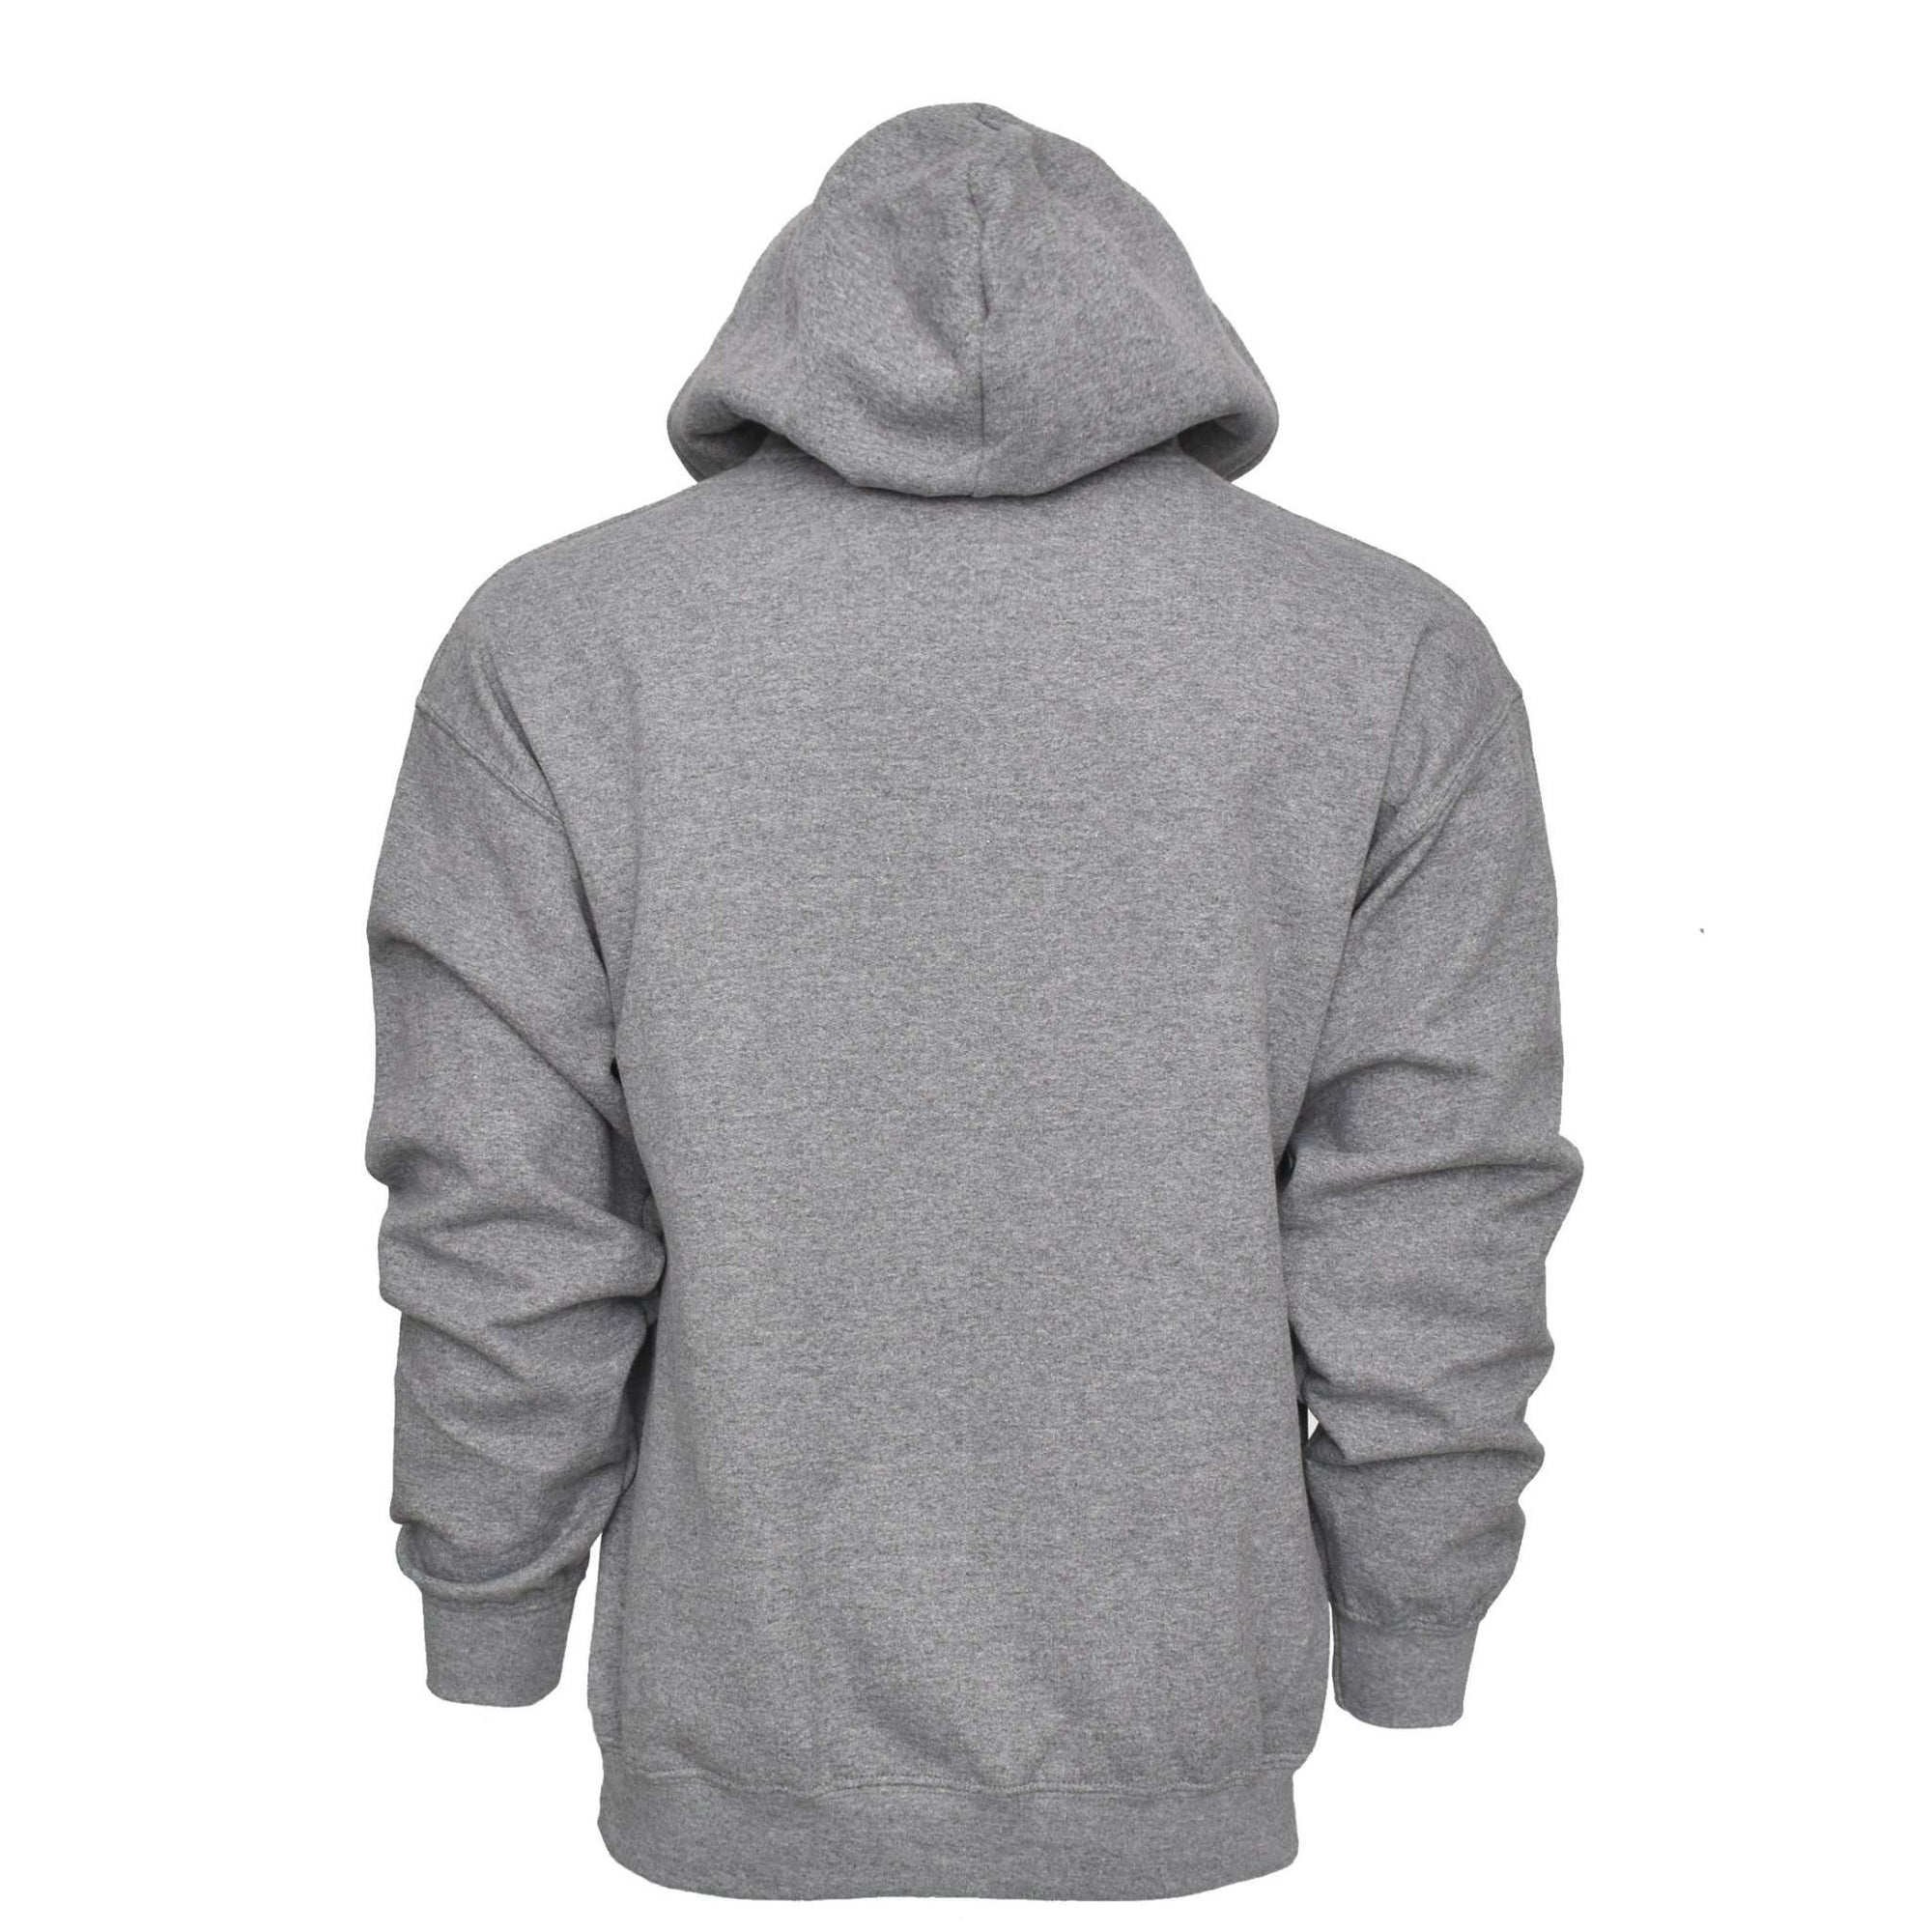 EVORETRO The Cool One Adult Hoodie - EvoRetro Lets Game